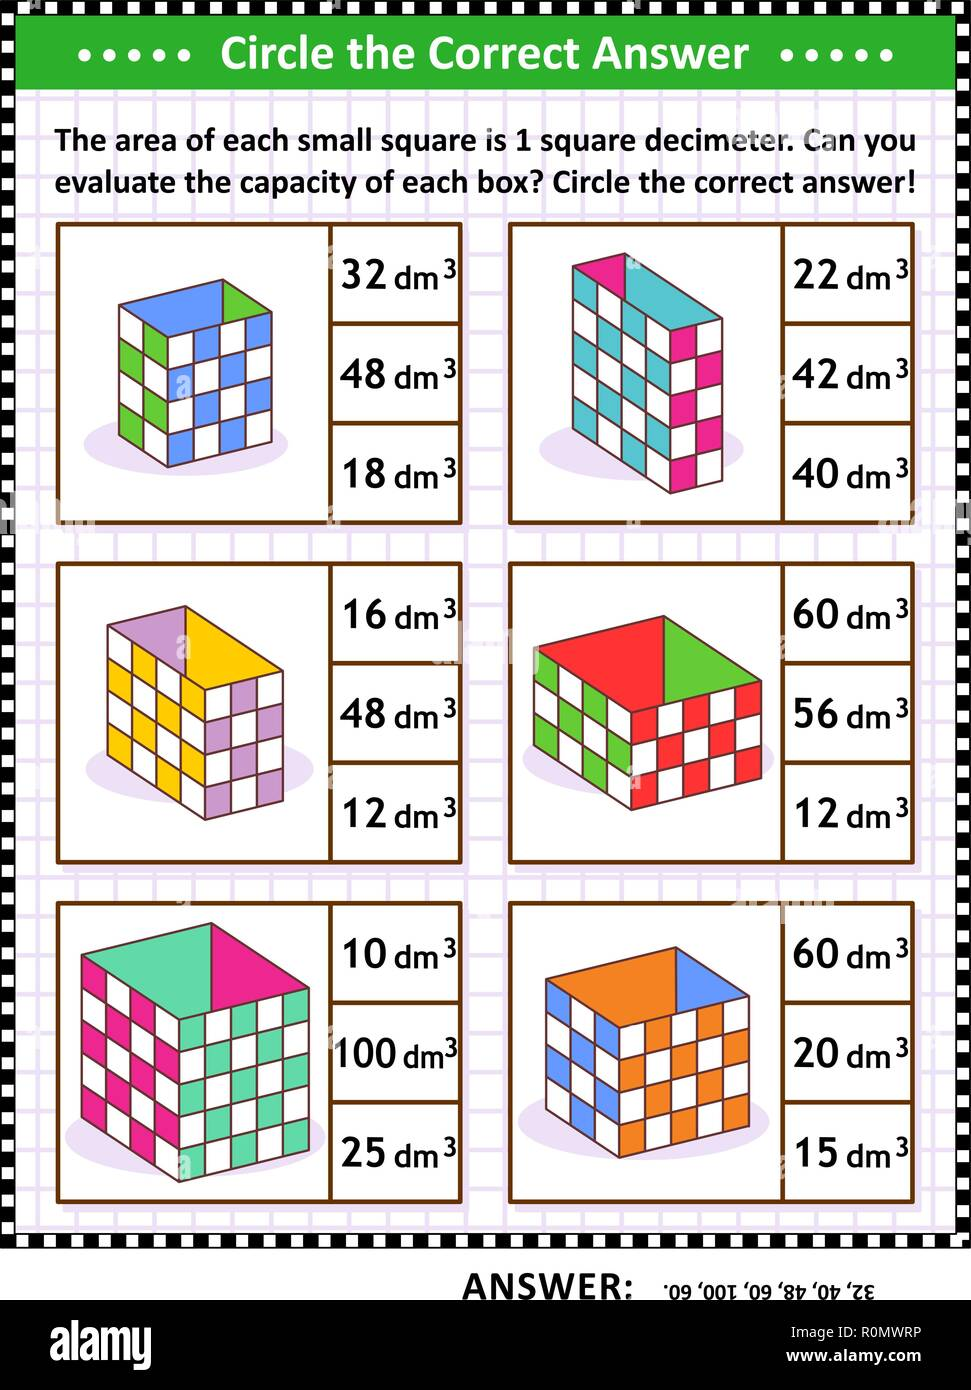 Math skills and IQ training visual puzzle or worksheet. Evaluate the capacity of each box.  Circle the correct answer. Answer included. - Stock Vector